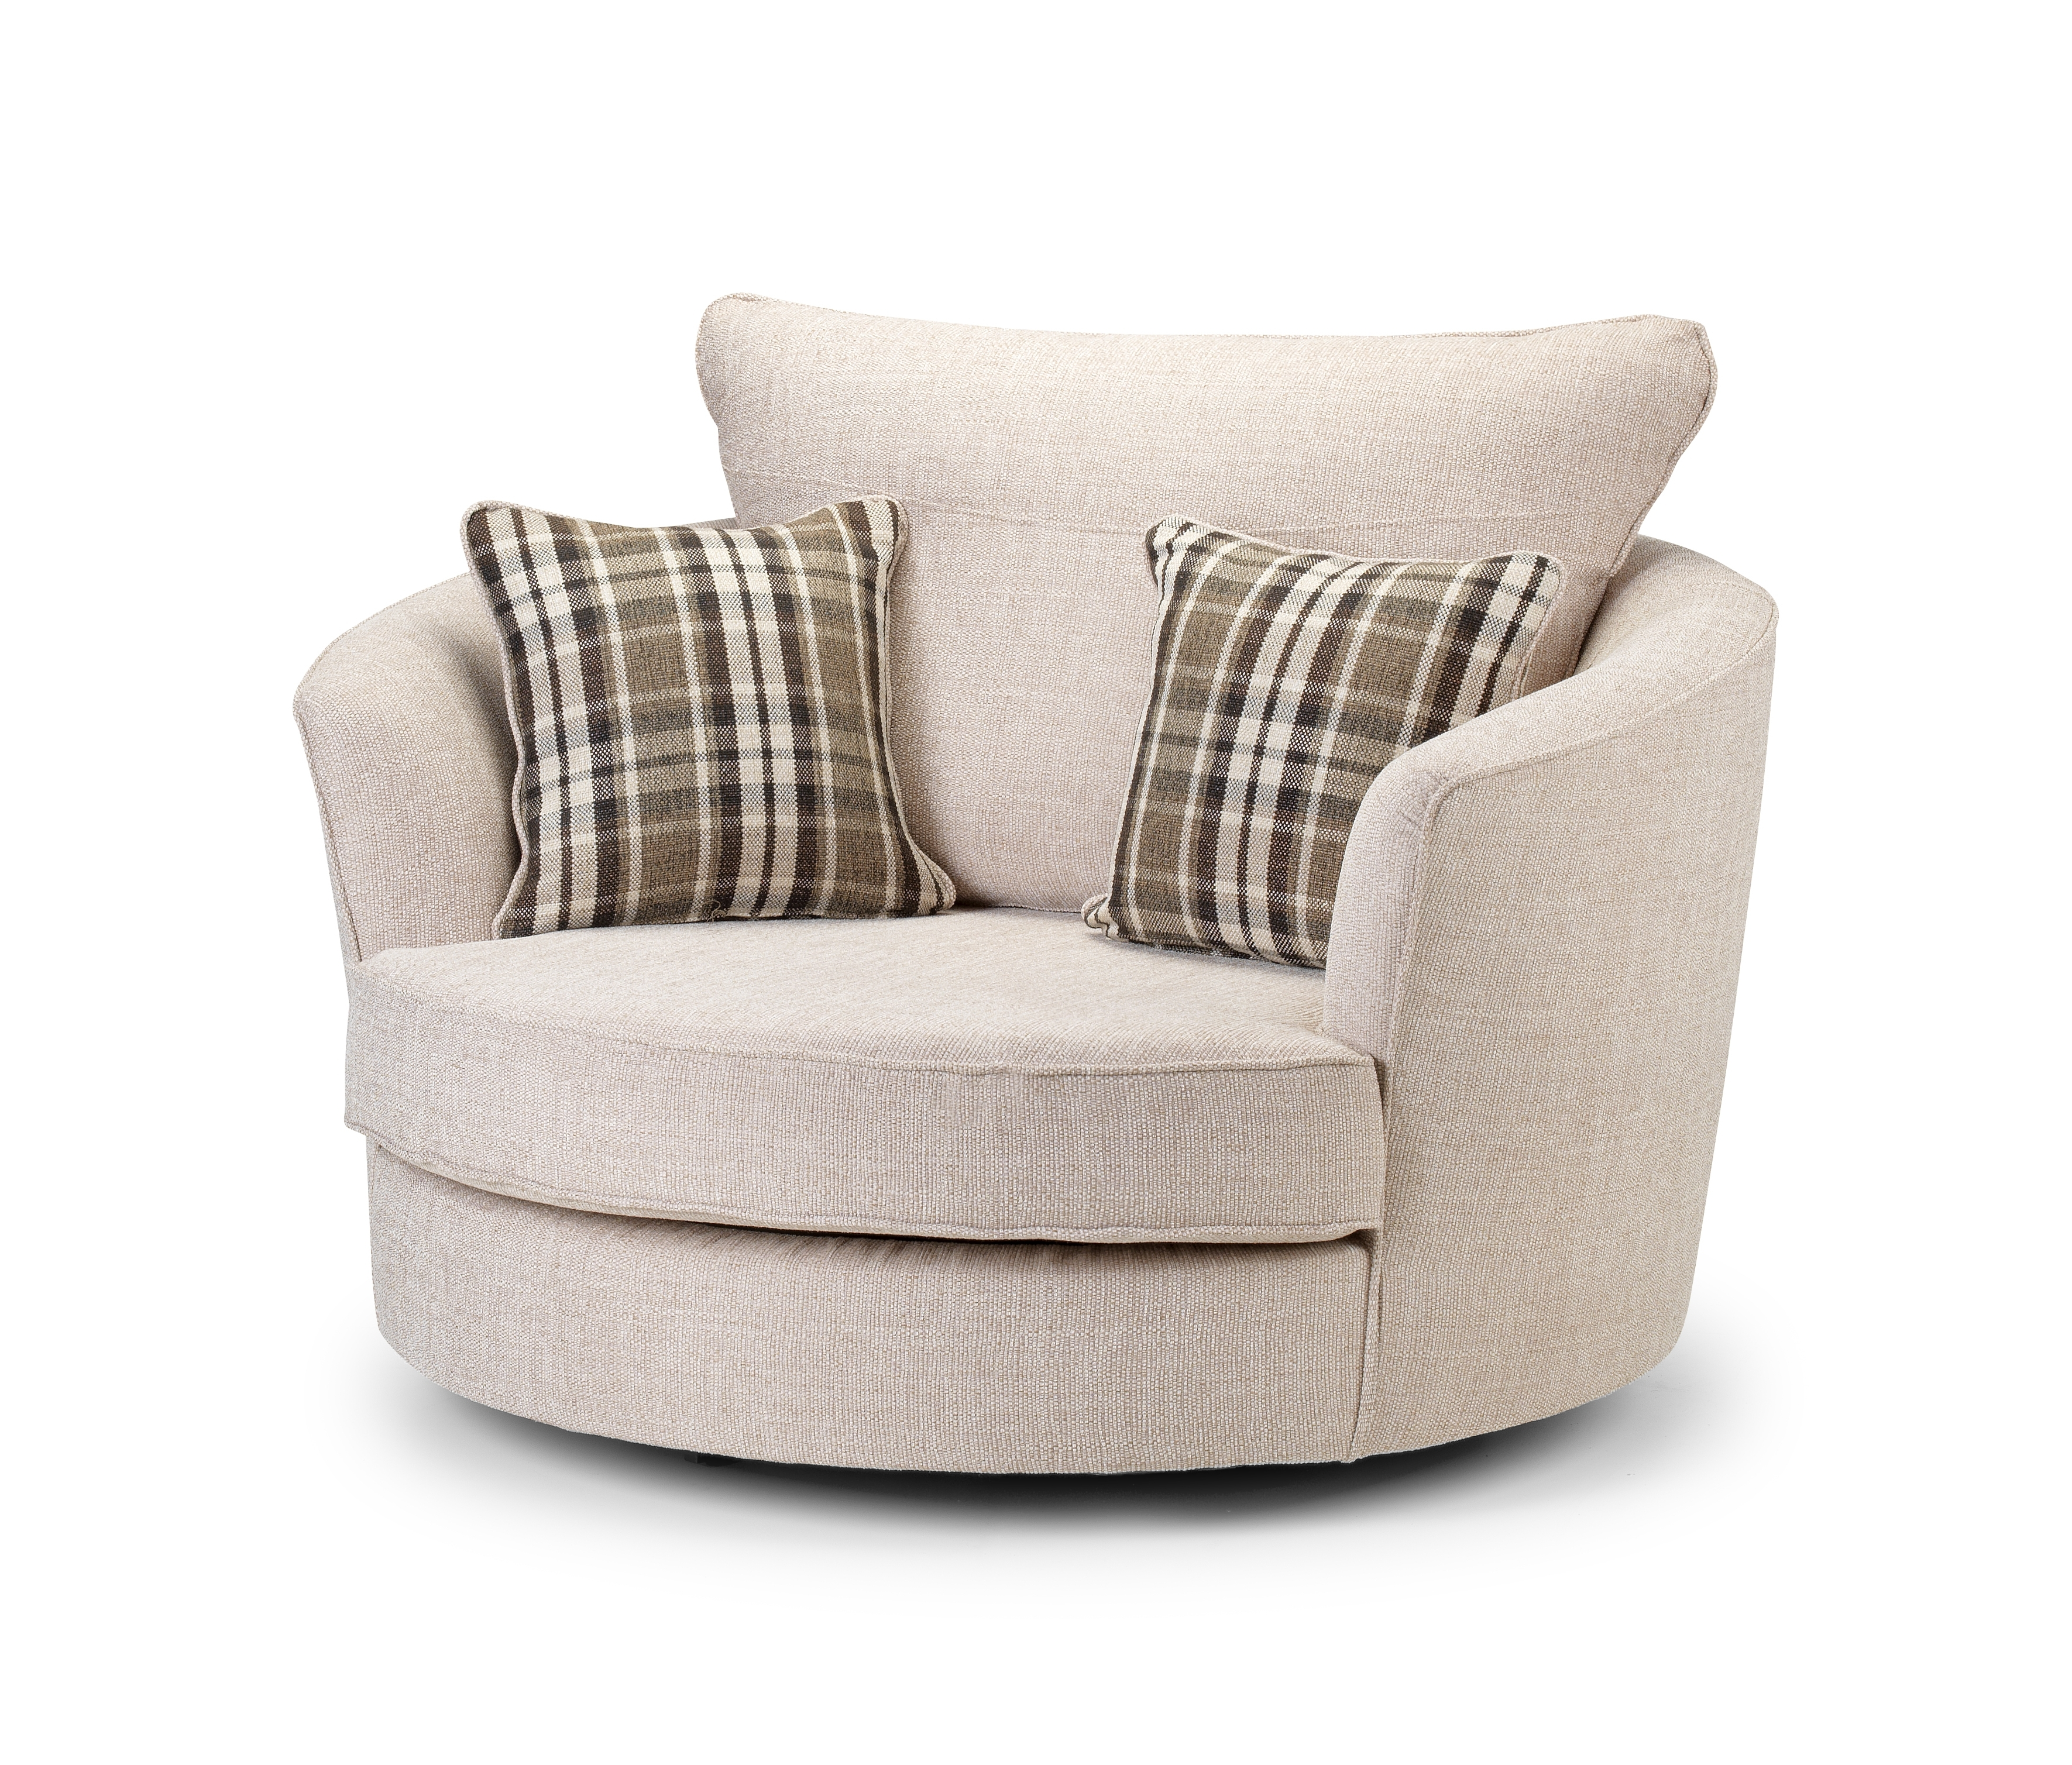 Well Liked Mini Sofas For Sofas : Round Sofa Bed Mini Couch Round Couch Bed Grey Sofa Set (View 18 of 20)